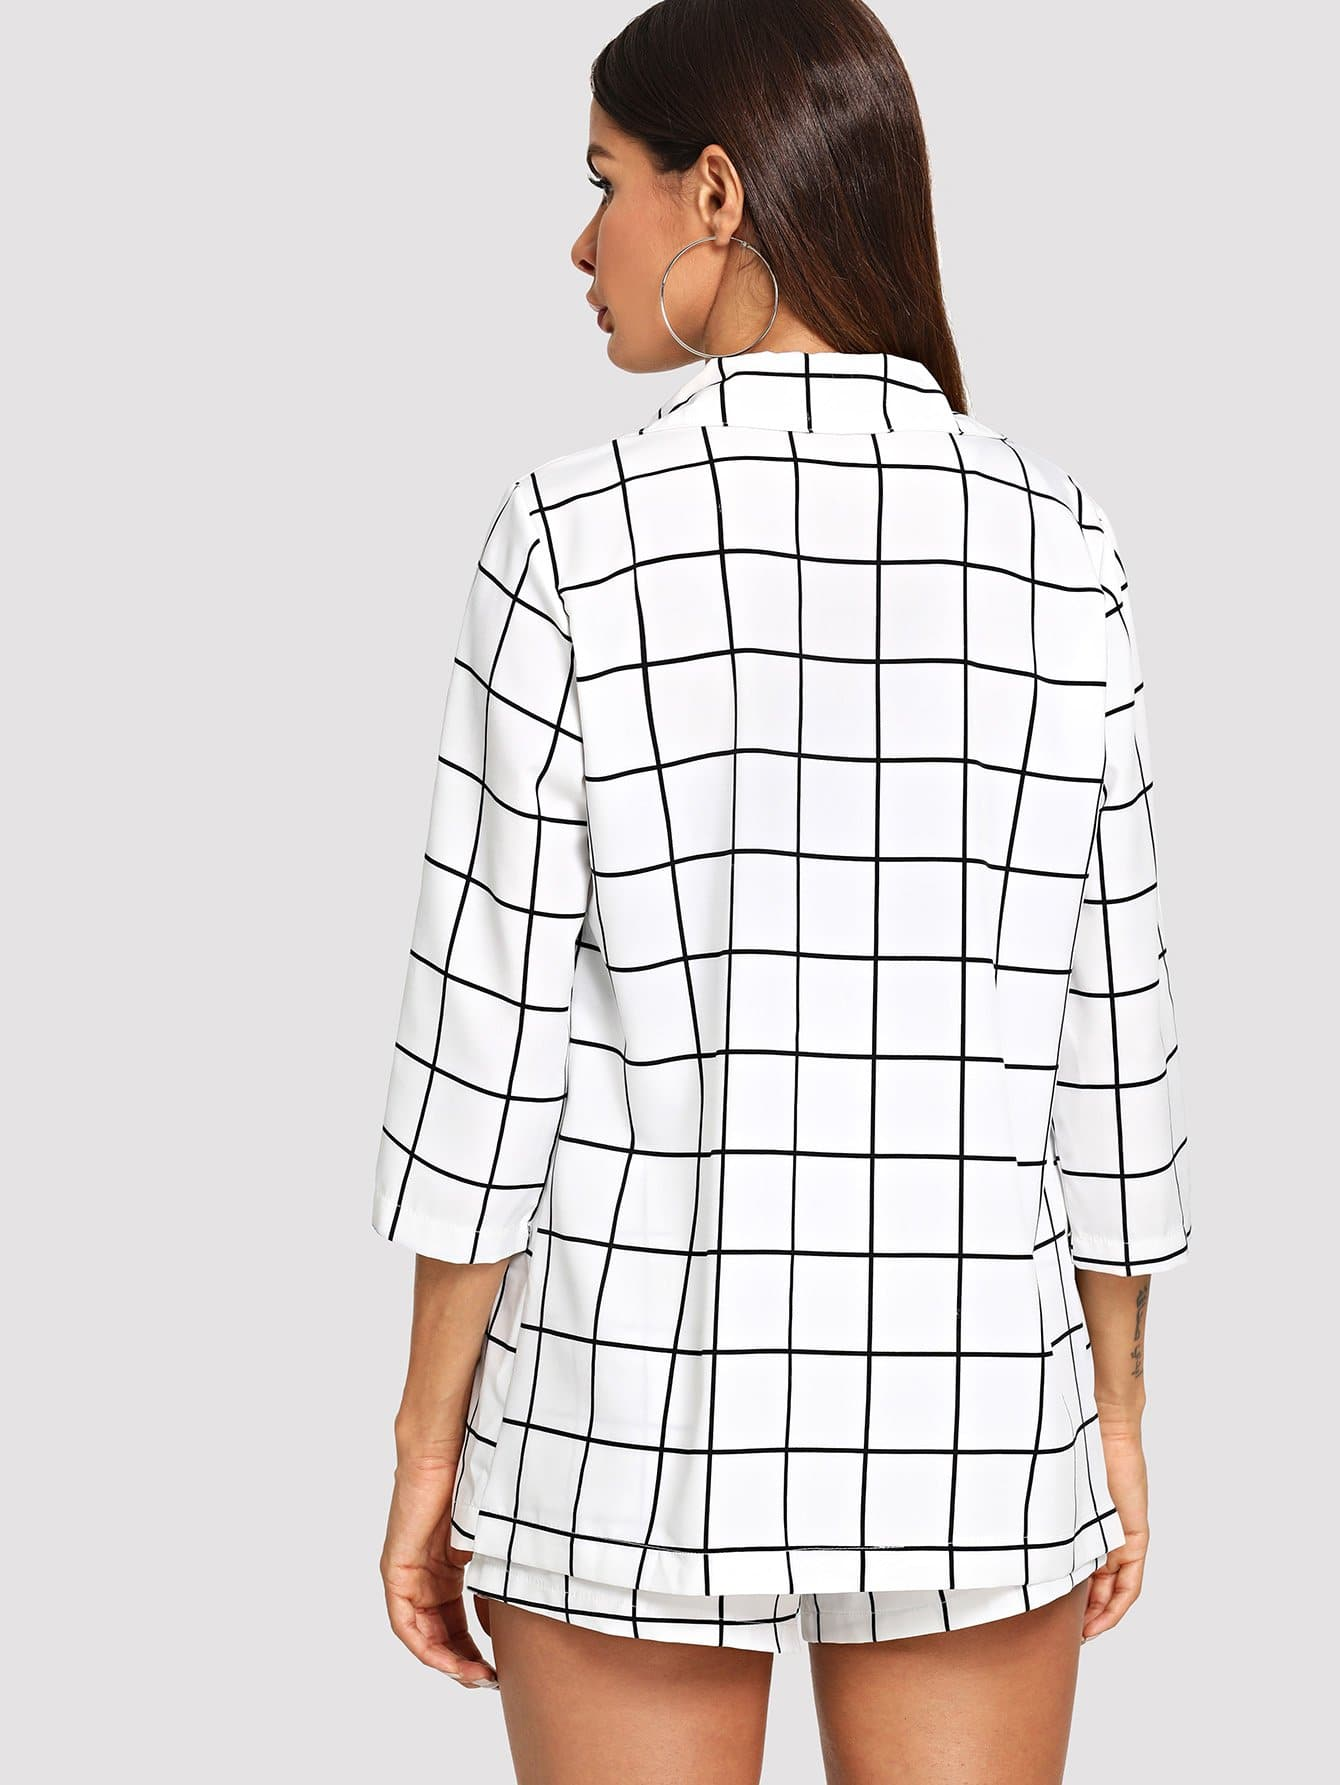 Sheinside Black And White Plaid Notched Blazers With Self Tie Waist Shorts Women Bademode Kleidung & Accessoires